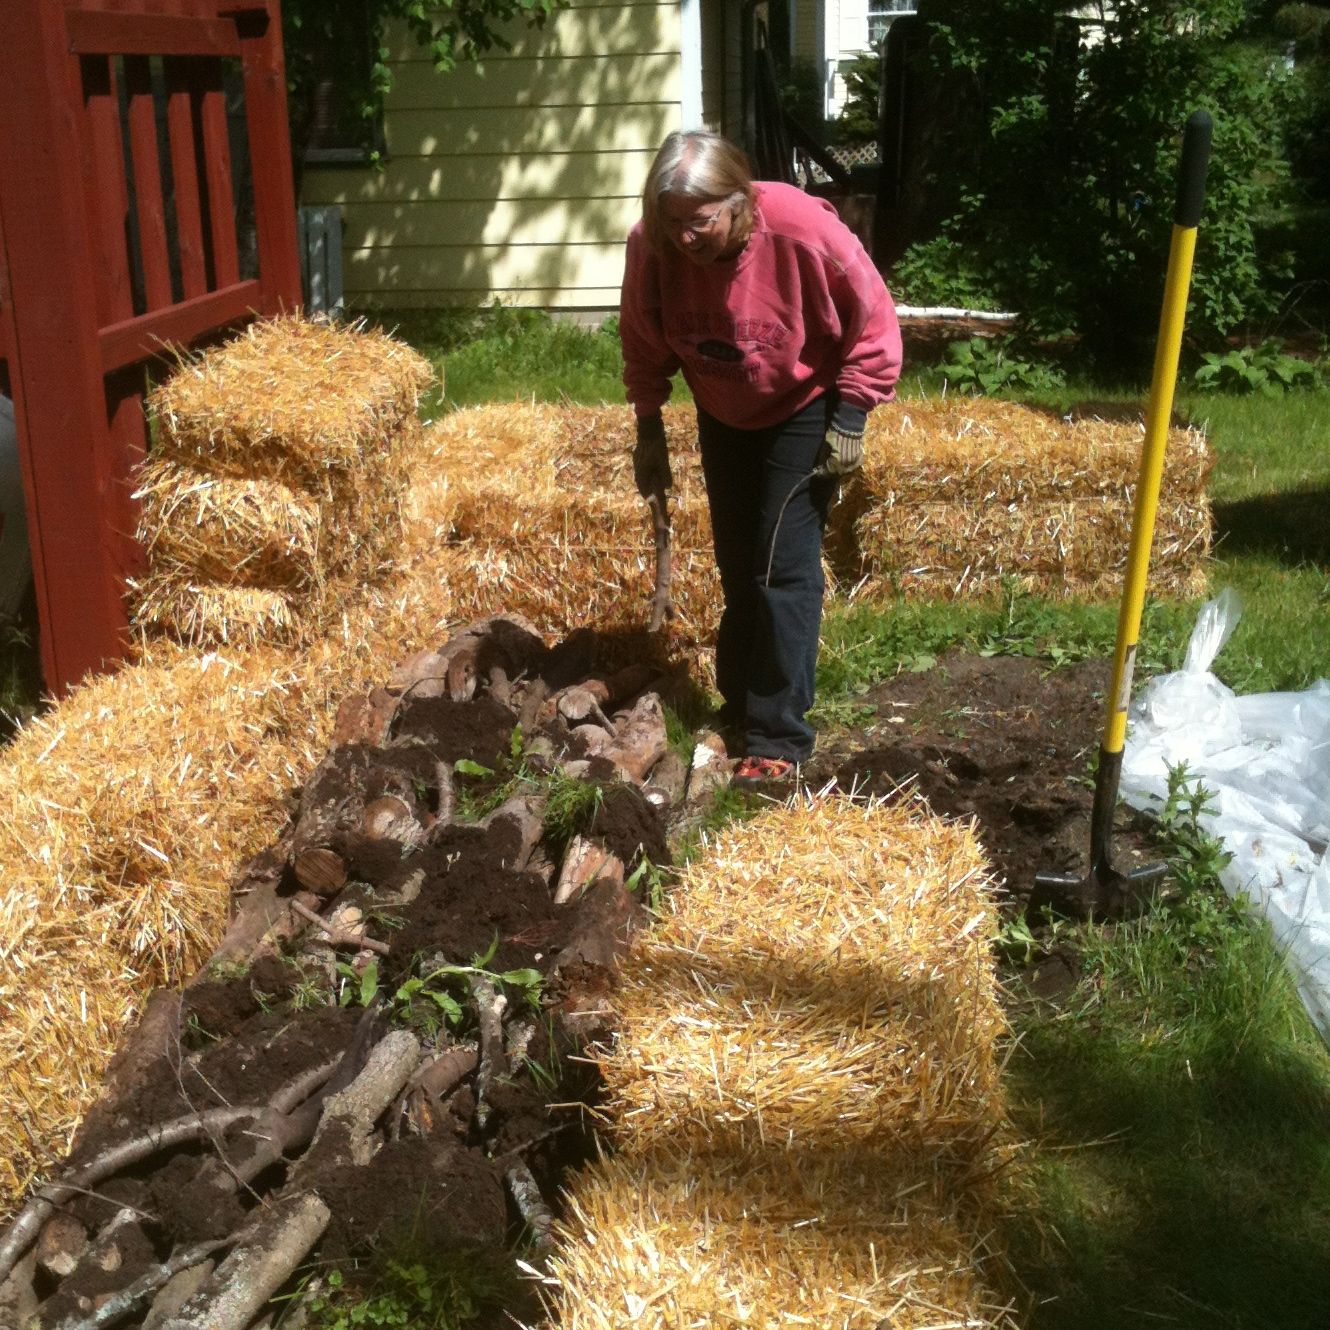 Small Town Gardens: Hugelkultur combined with Straw Bale Gardening ...